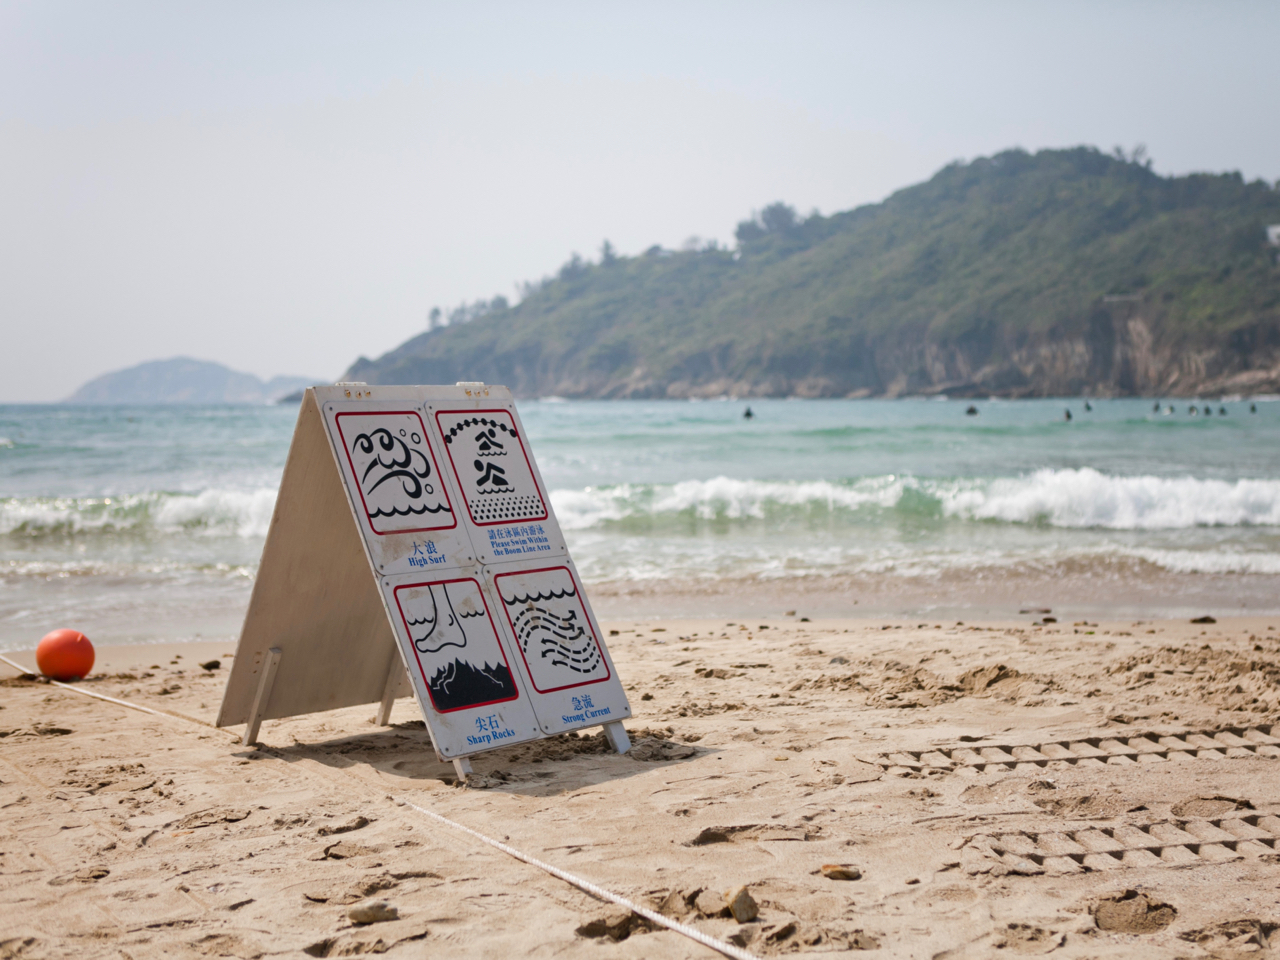 Surfing at Tai Long Wan